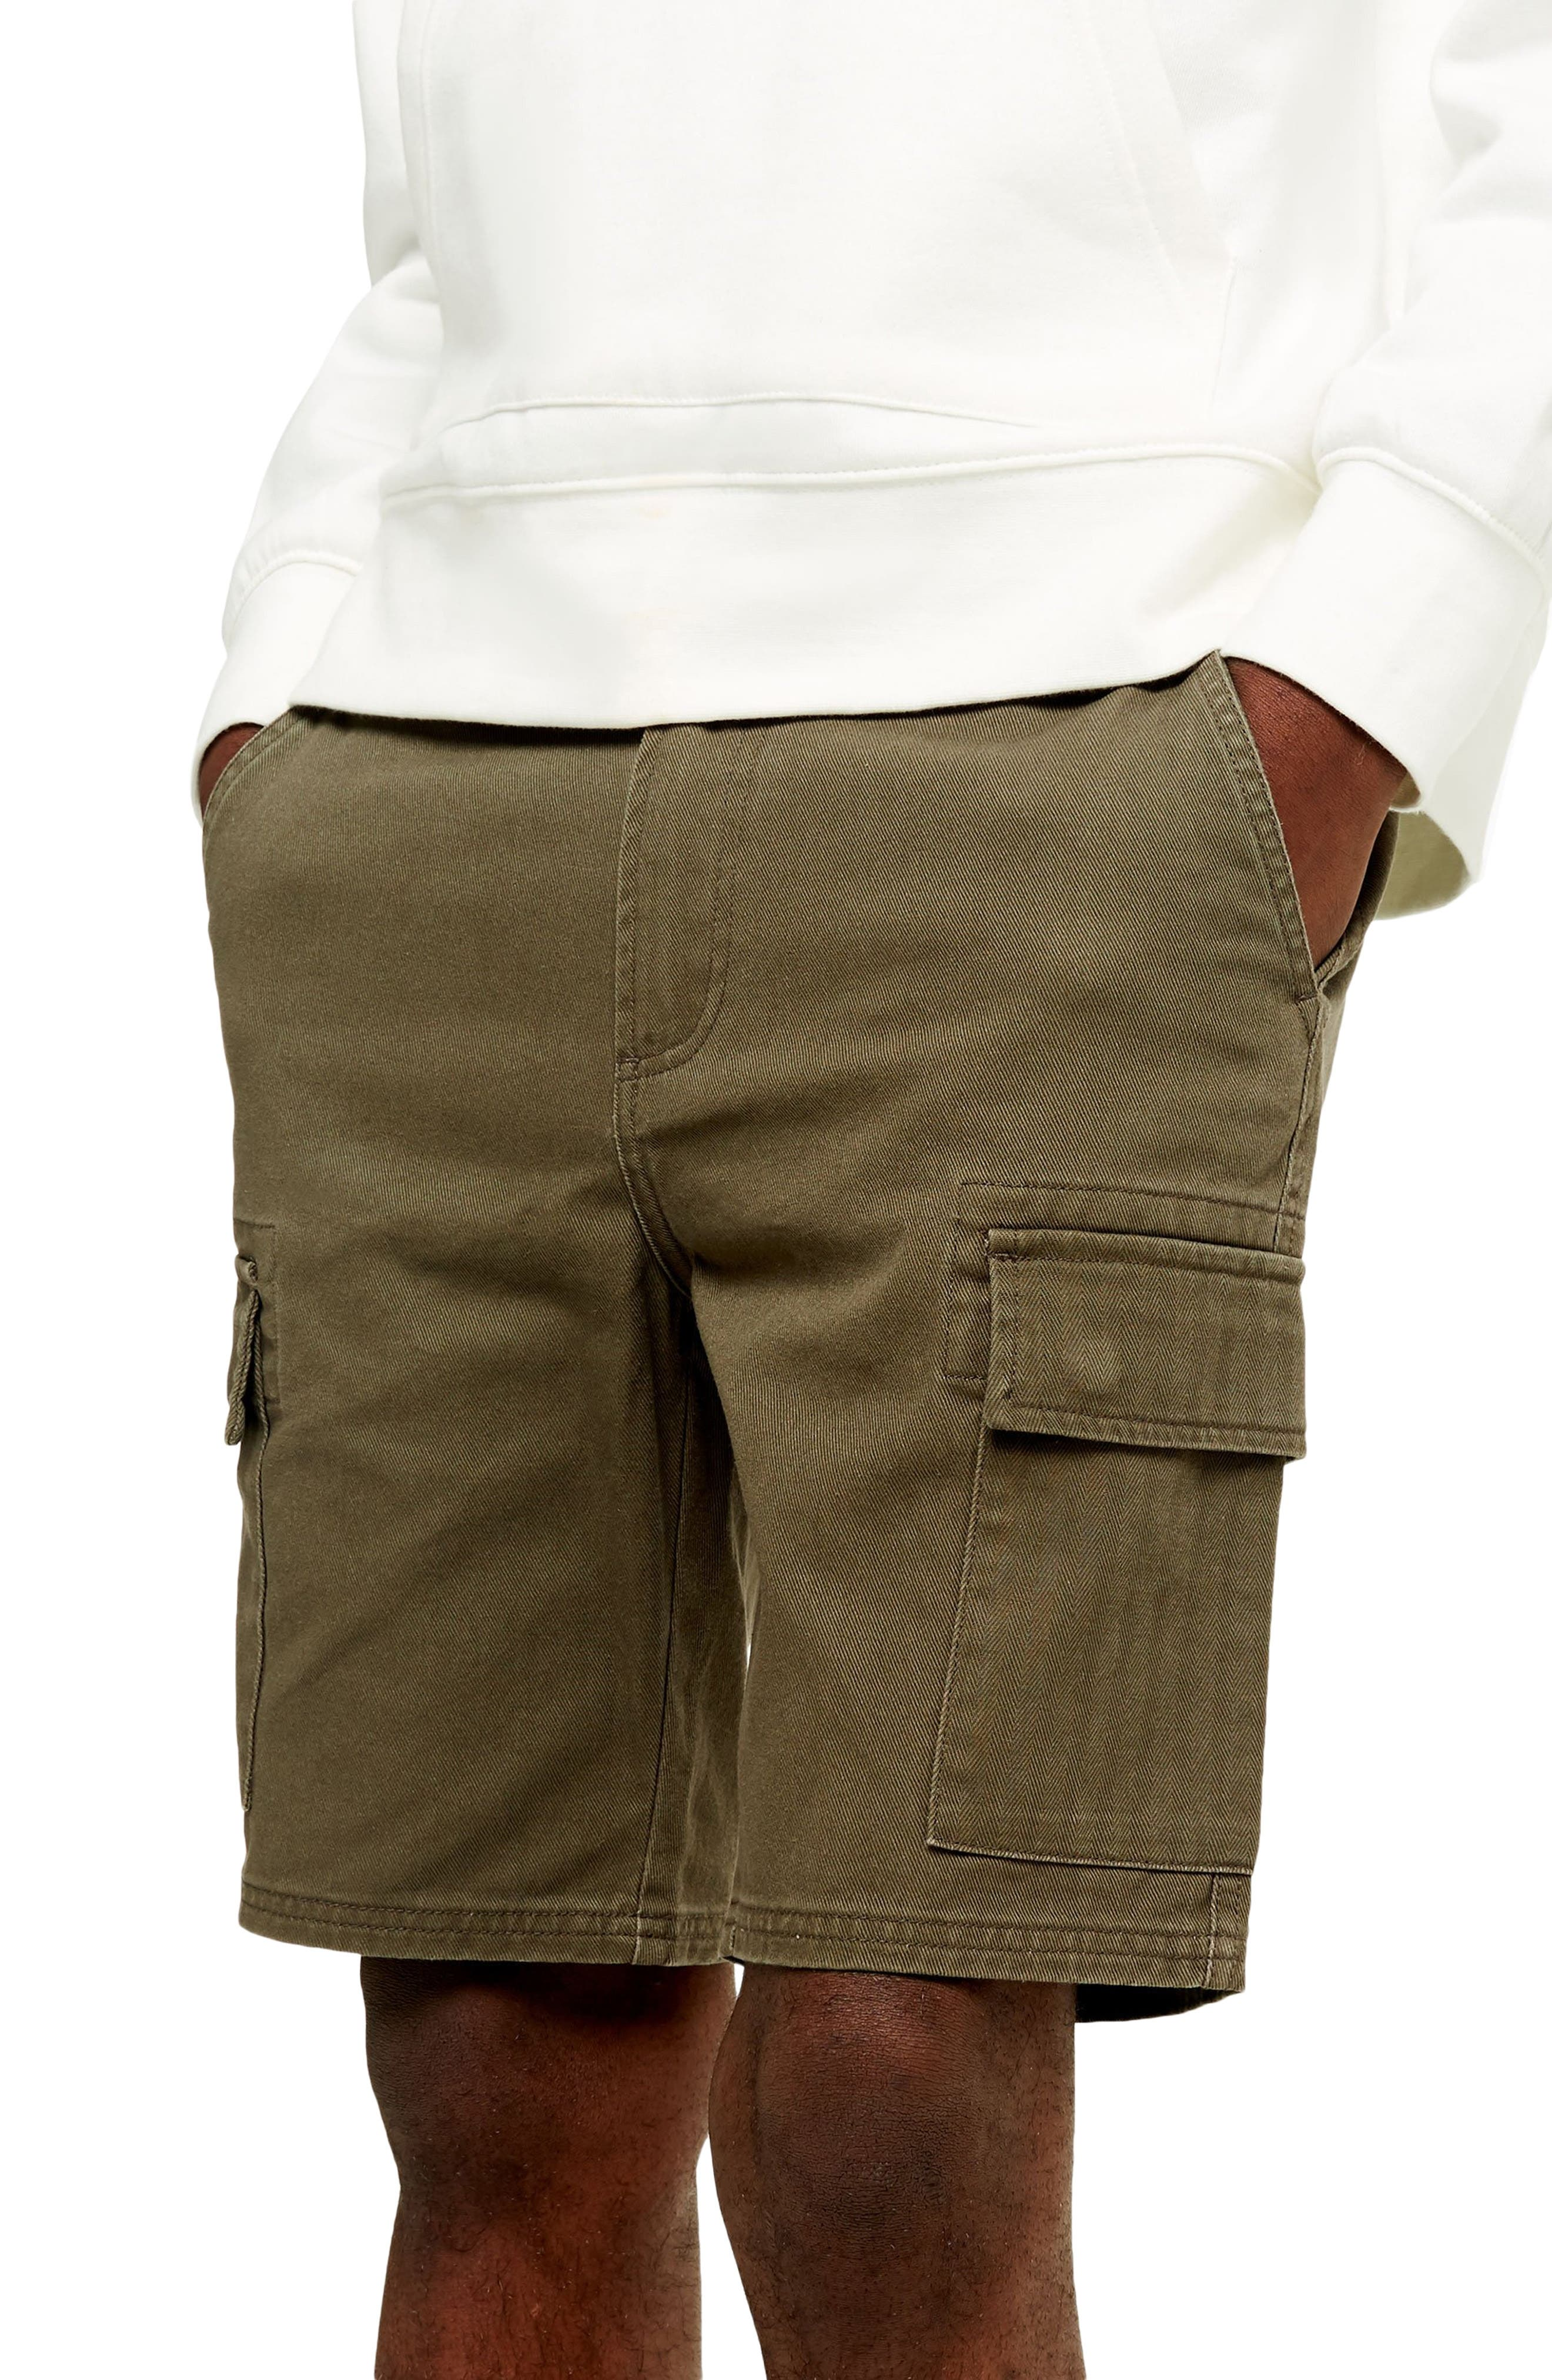 Tough cotton twill and herringbone on the pockets define easy cargo shorts with versatile appeal. Style Name: Topman Classic Cargo Shorts. Style Number: 5985865. Available in stores.